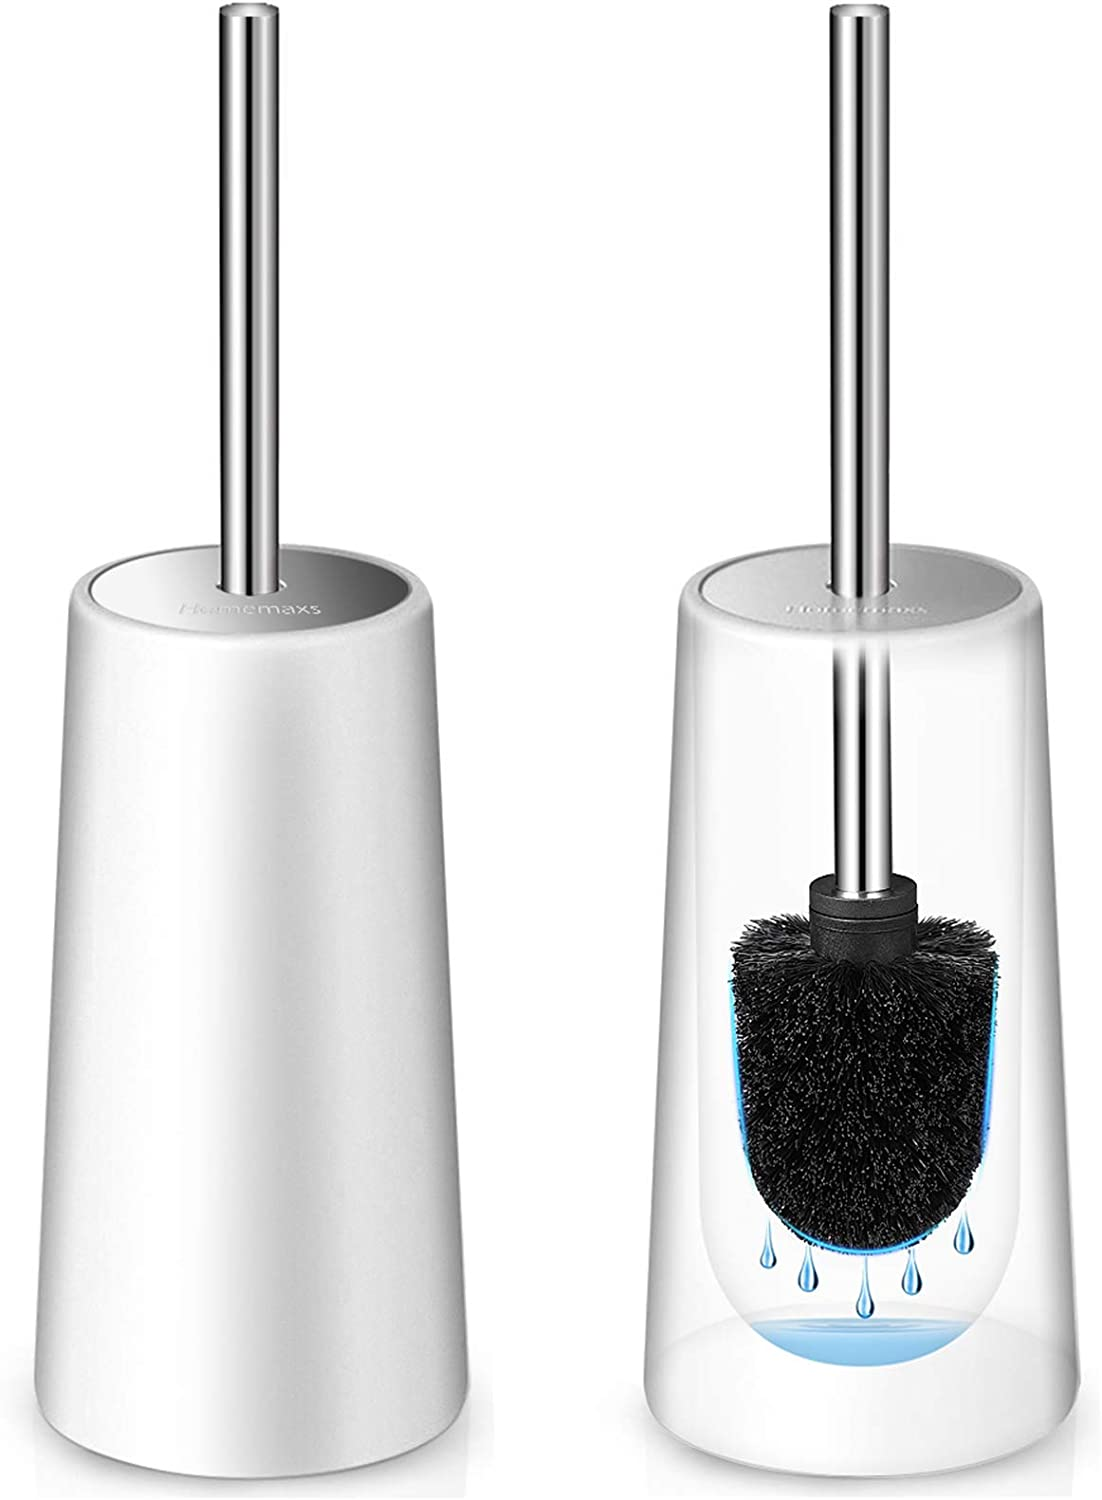 Amazon Com Homemaxs Toilet Brush And Holder 2 Pack Heavy Duty 2021 Upgraded Stainless Steel Length Handle Toilet Bowl Brush Set 4 4x4 4x16 5 Inches Durable Shed Free Scrubbing Bristles Discreet Wand Stand Home